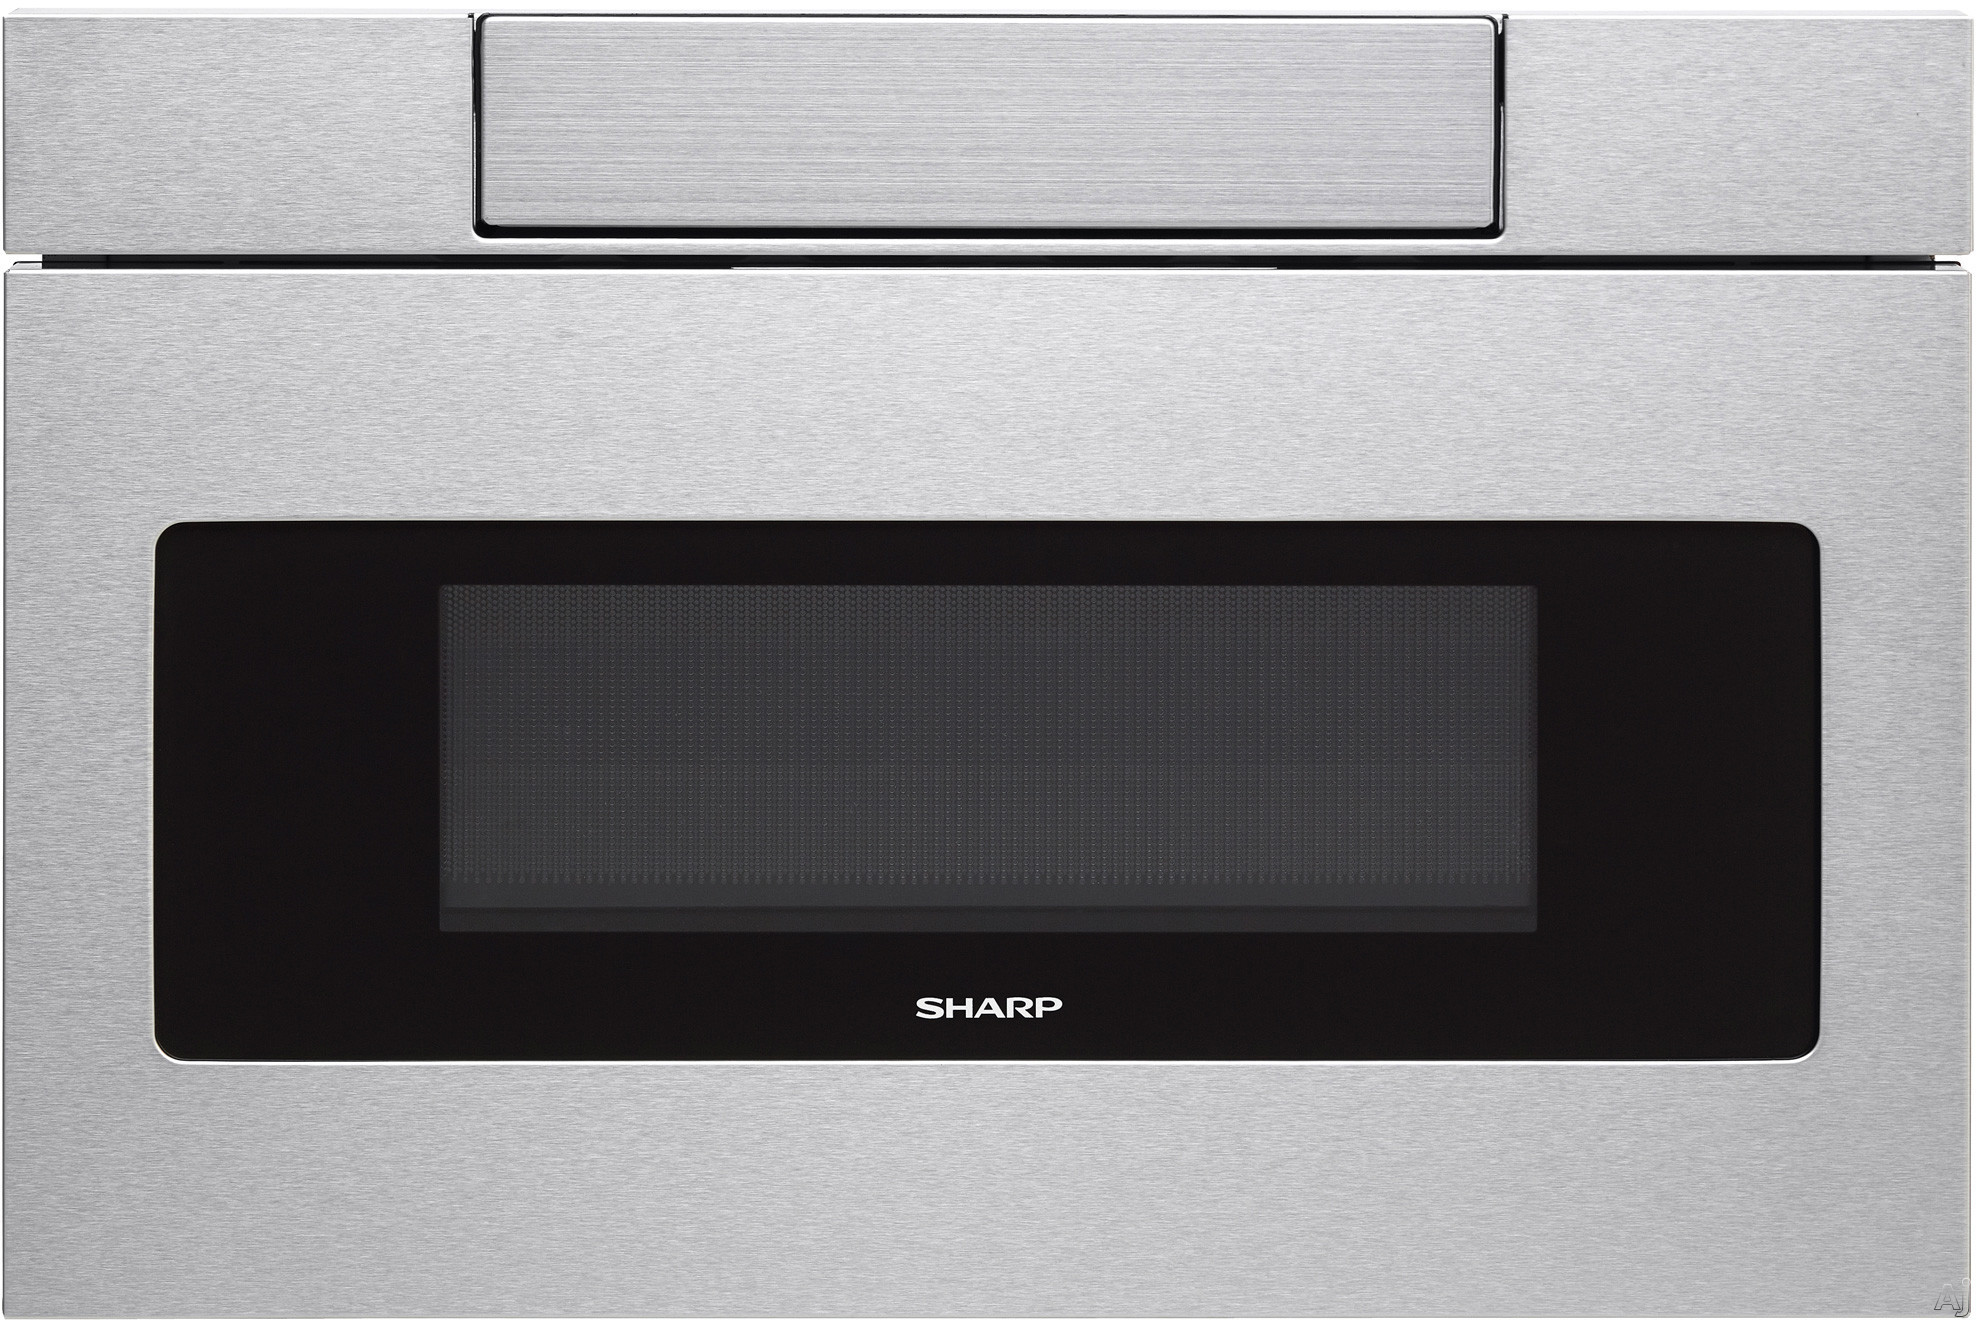 "Sharp SMD2470 24 Inch Microwave Drawer with Easy Touchâ""¢, Hidden Control Panel, Sensor Cook, Design Flexibility, Timer, 1,000 Watts, 1.2 cu. ft. Capacity, Reheat and Keep Warm"